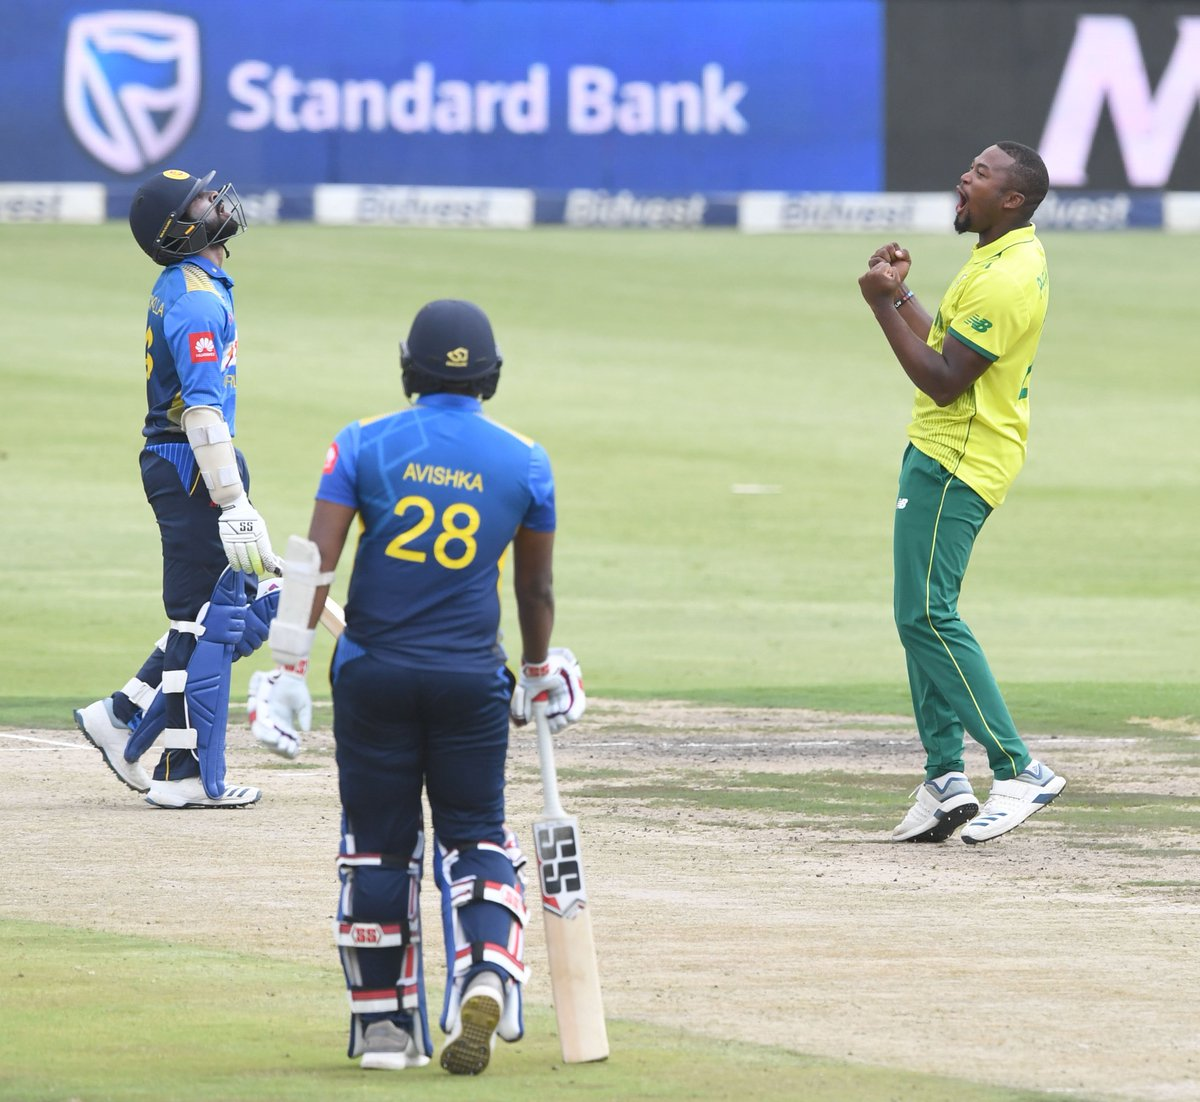 D2fetzKX4AA94hG - ICC T20I Rankings: Hendricks pushes WC case with strong series against Sri Lanka